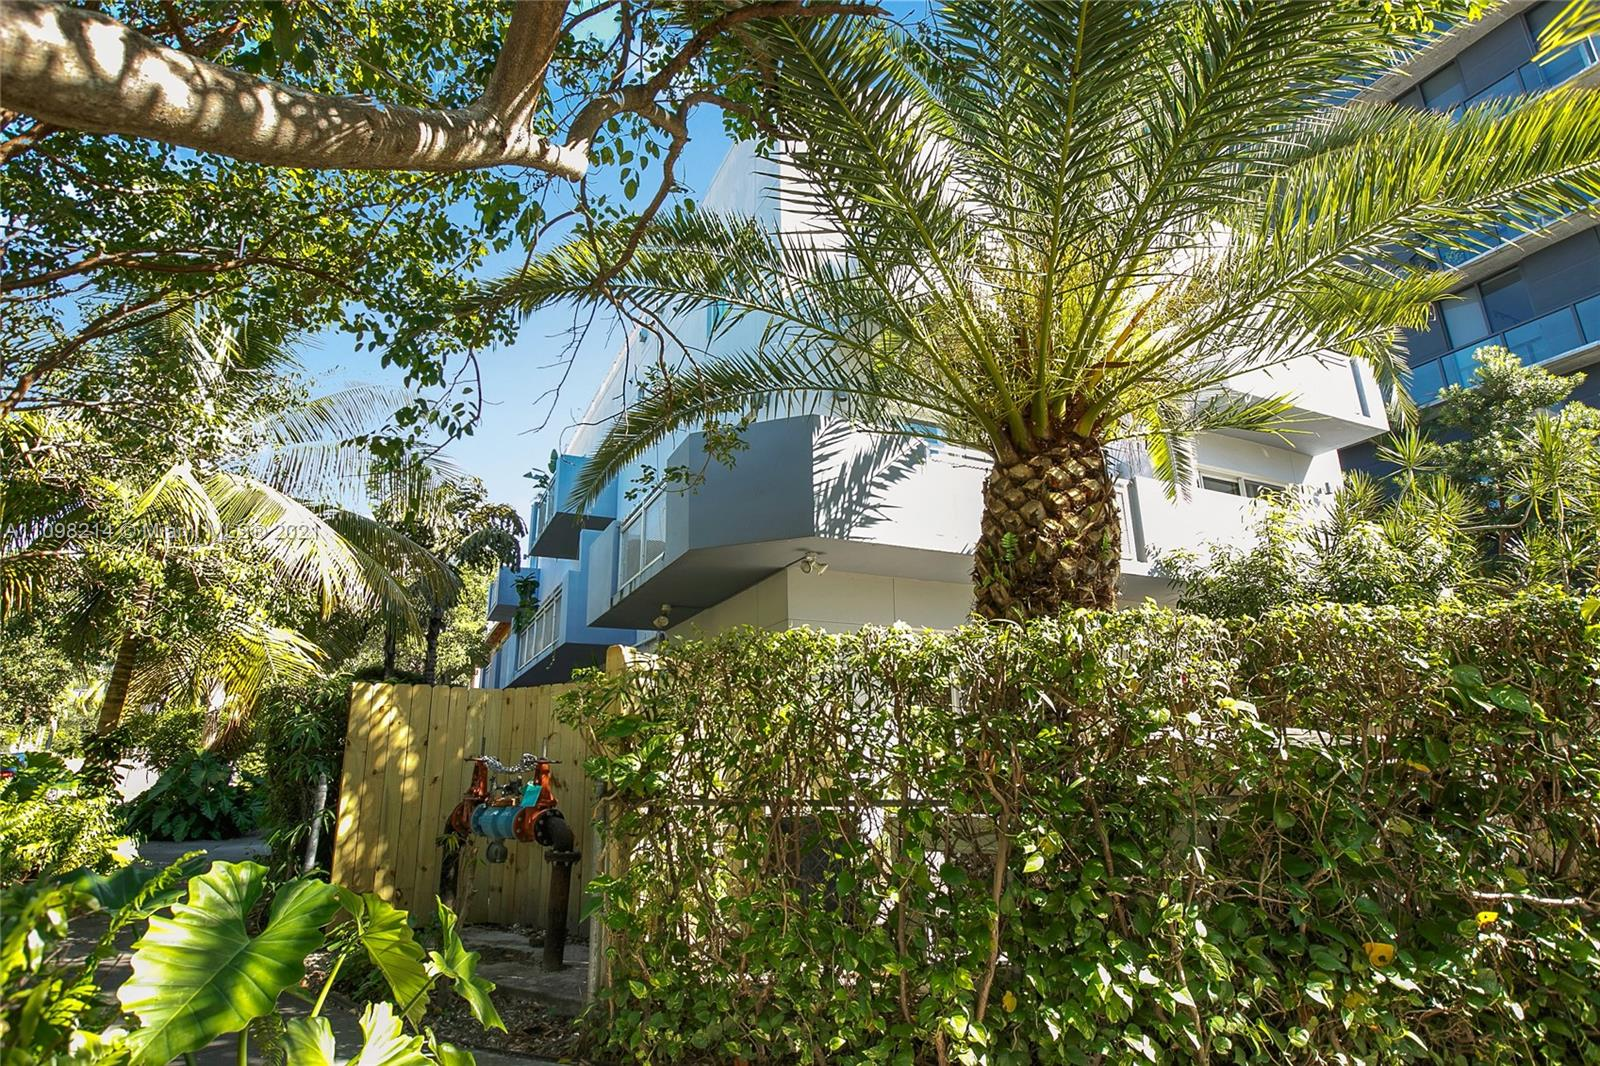 BRICKELL COURTS TOWNHOUSE Condo,For Sale,BRICKELL COURTS TOWNHOUSE Brickell,realty,broker,condos near me